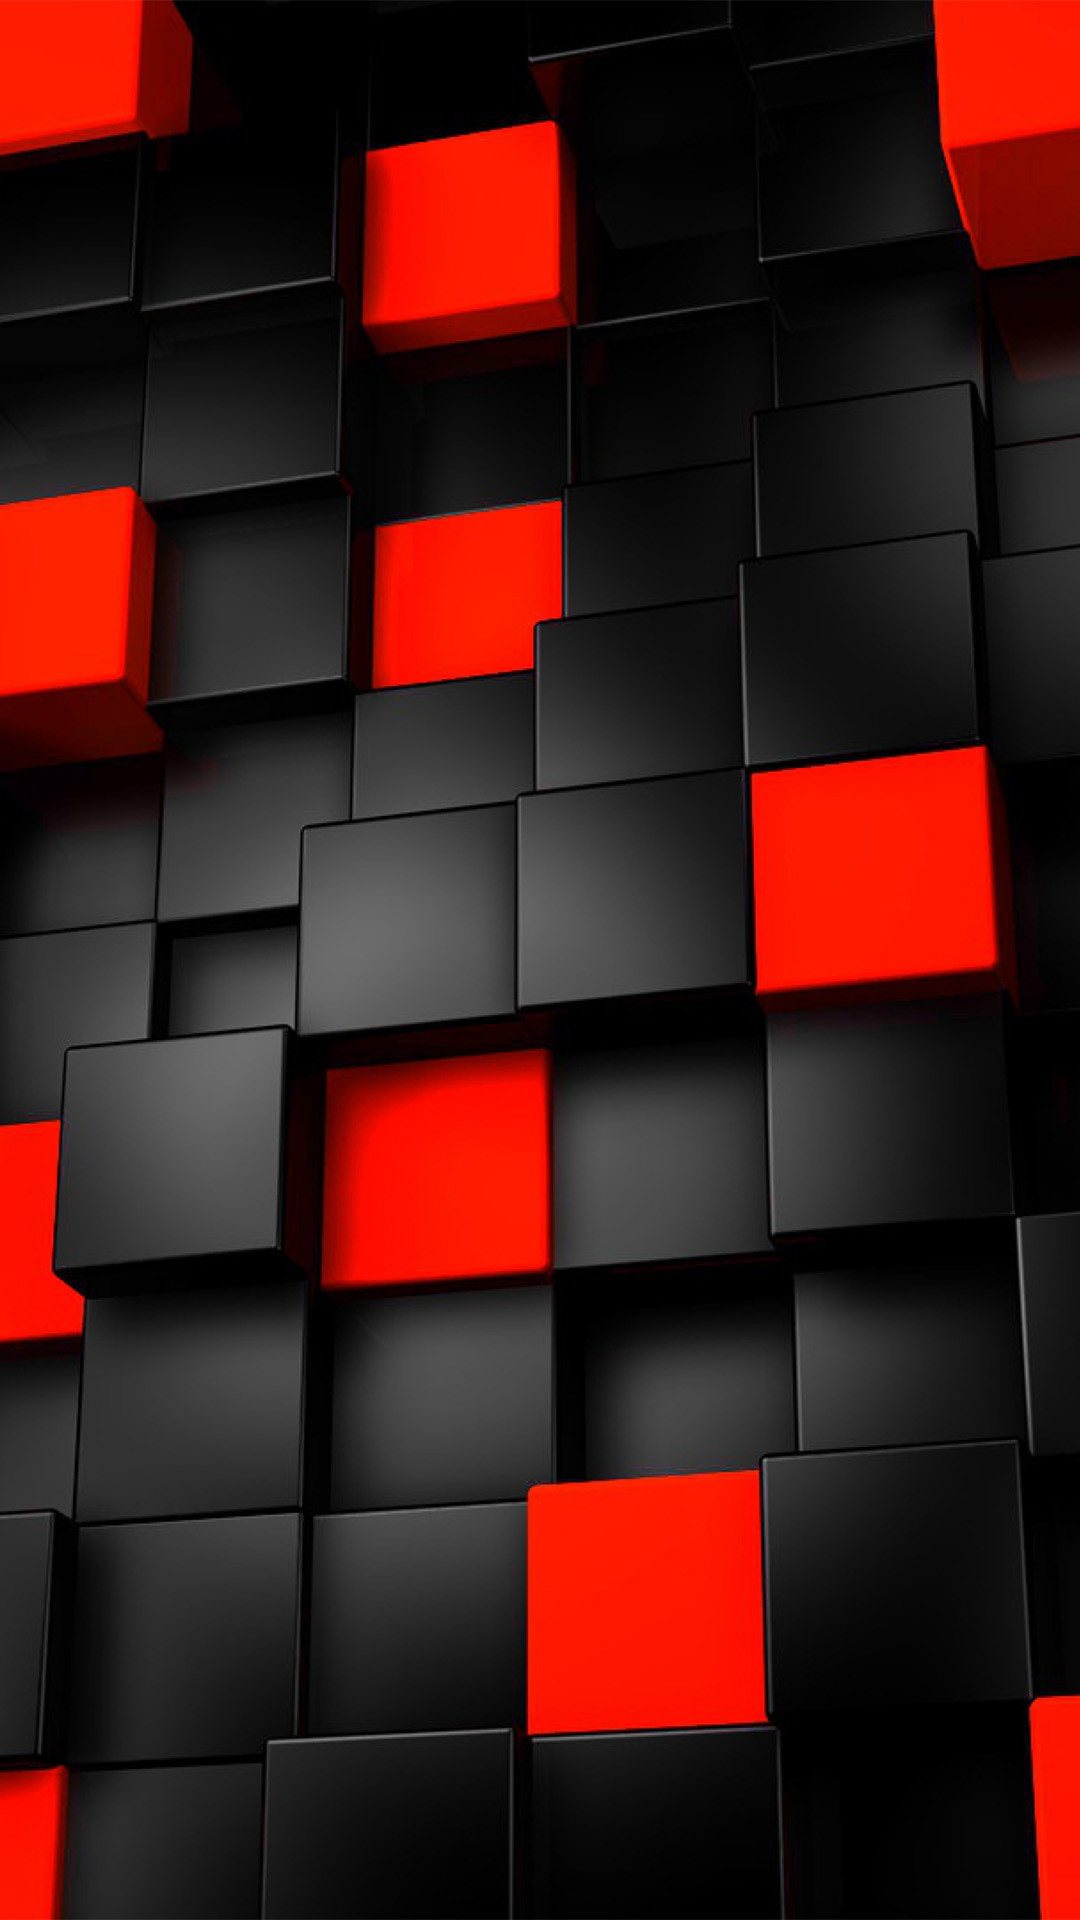 Black and Red iPhone Wallpaper (67+ images)